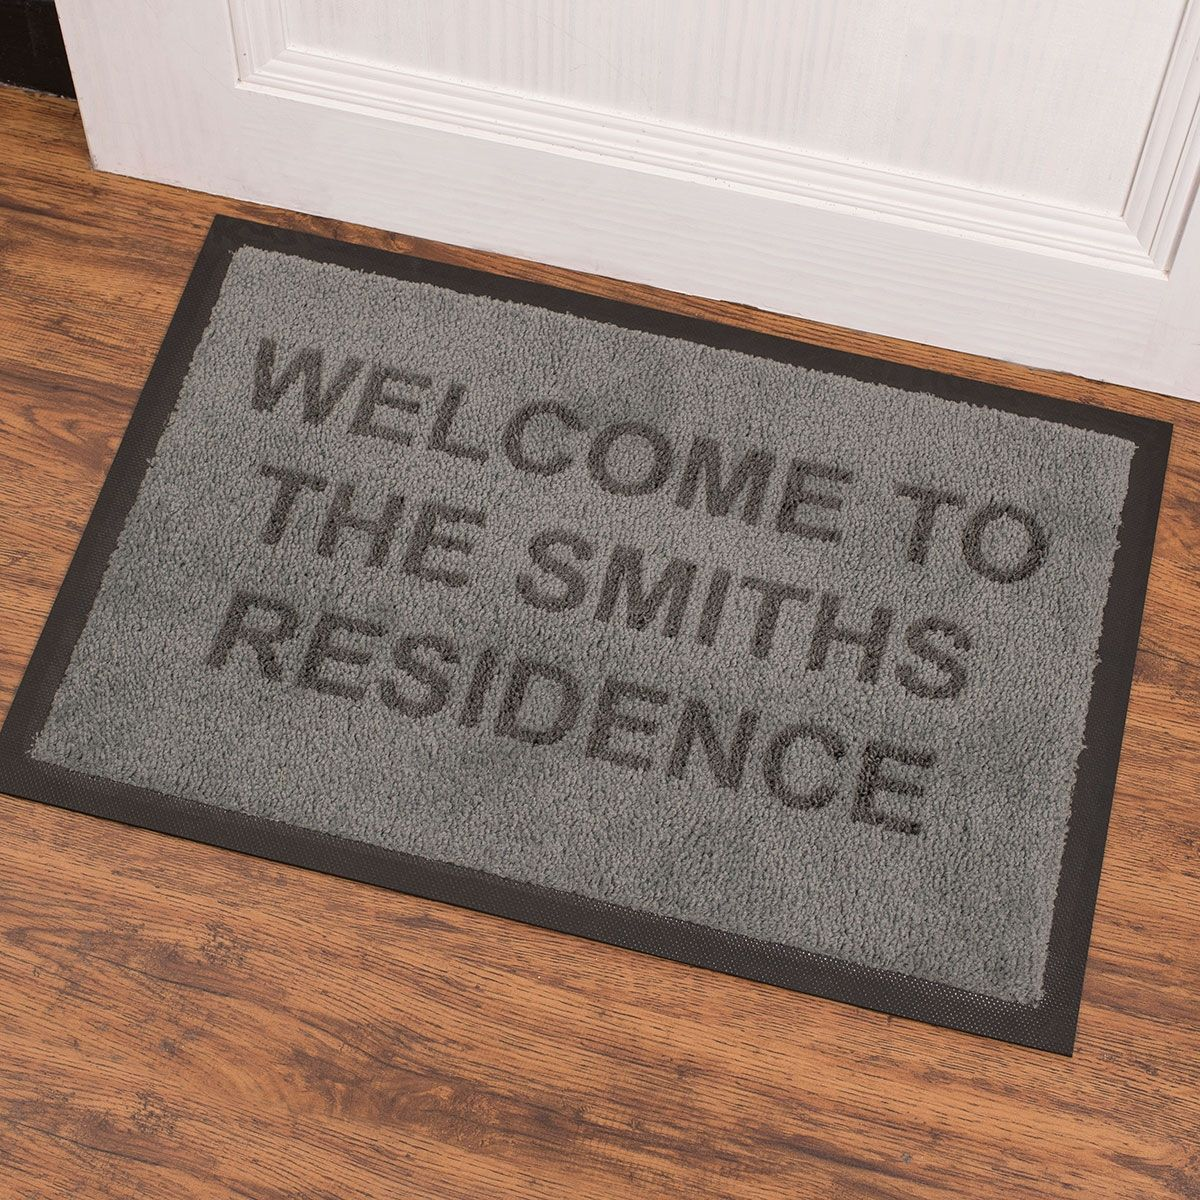 us indoor floors floor products home product entrance use for doortex mats image